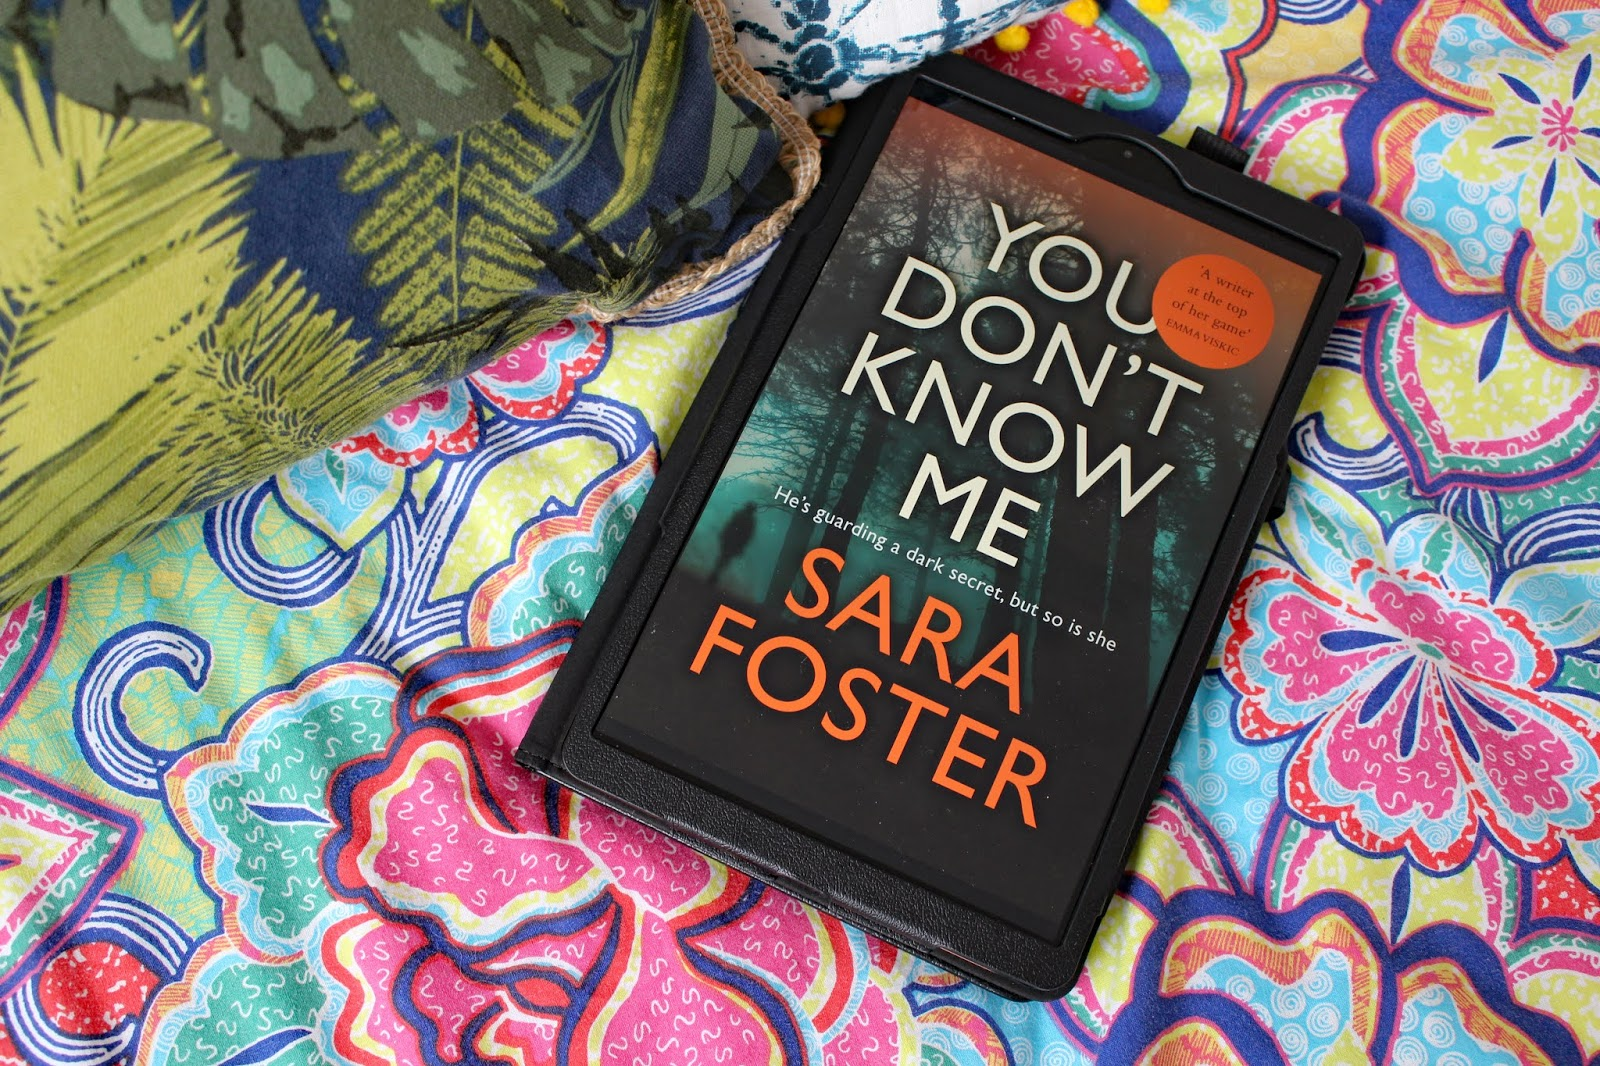 You Don't Know Me By Sara Foster | Book Review